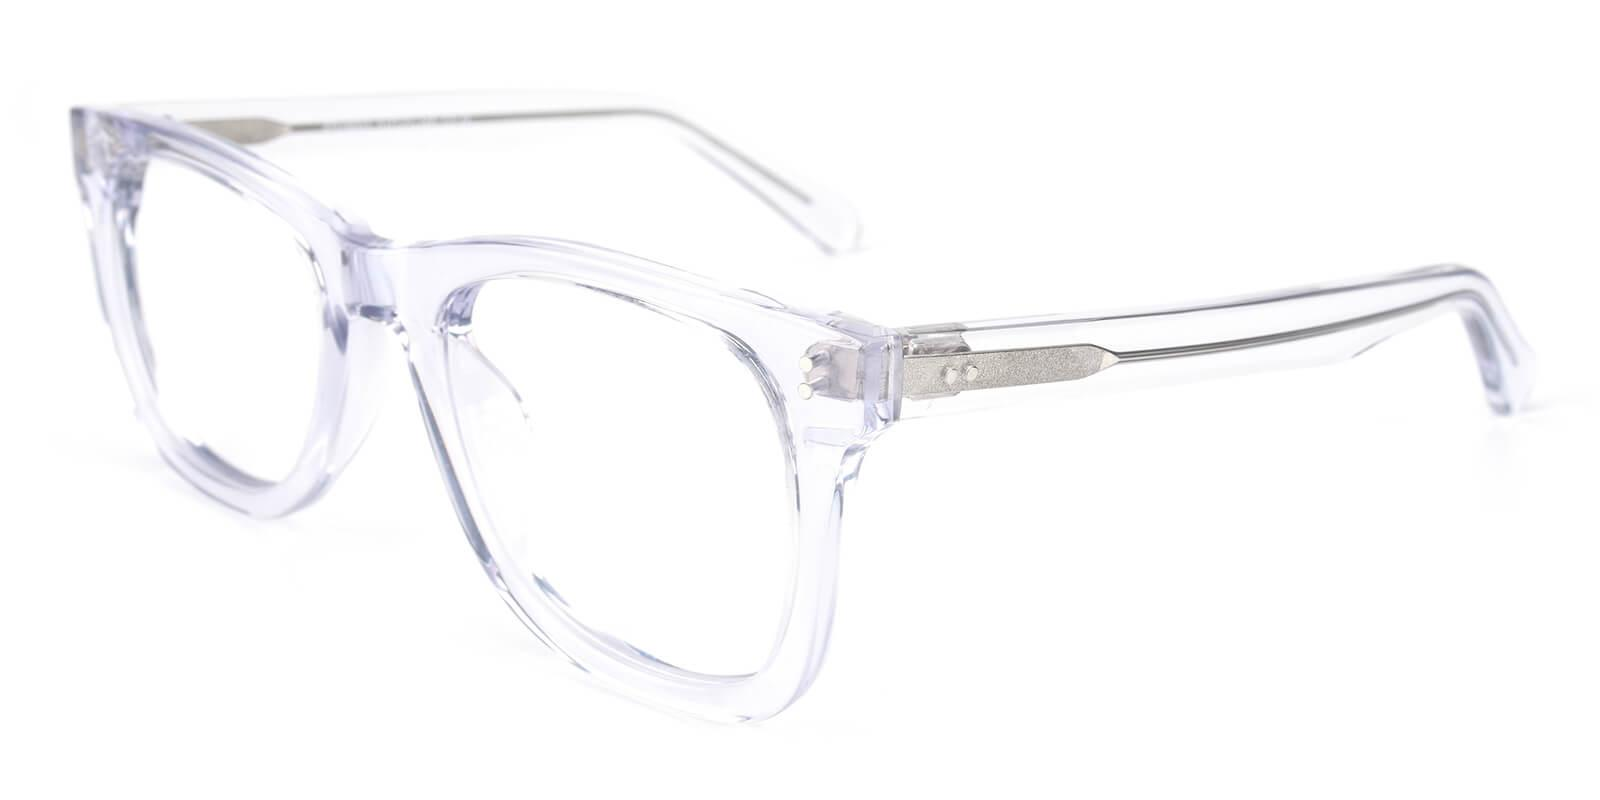 Trend-Translucent-Square-Acetate-Eyeglasses-additional1